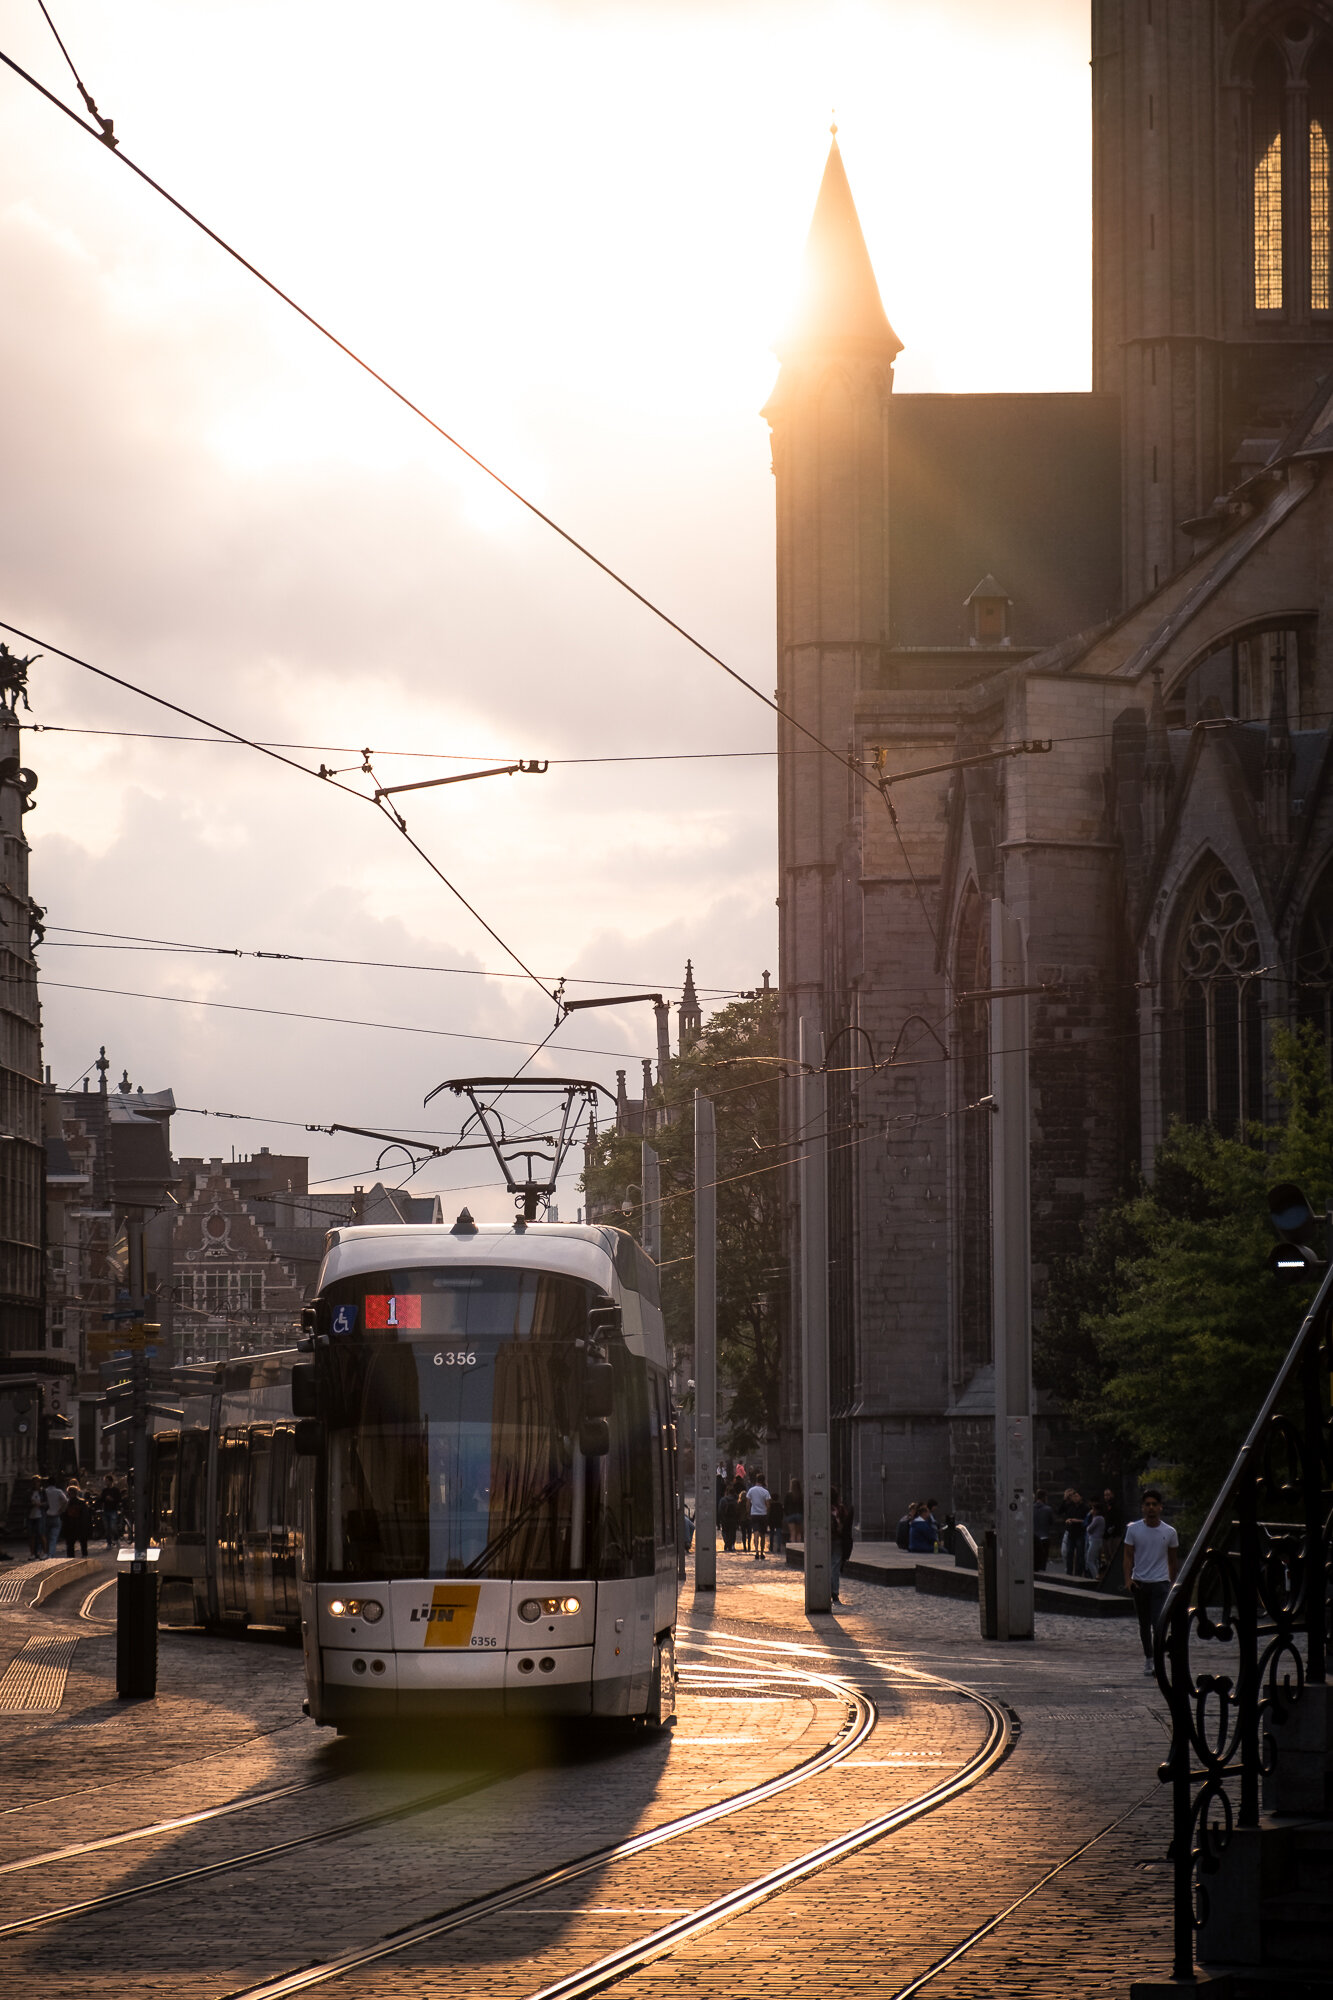 A tram driving through the city streets